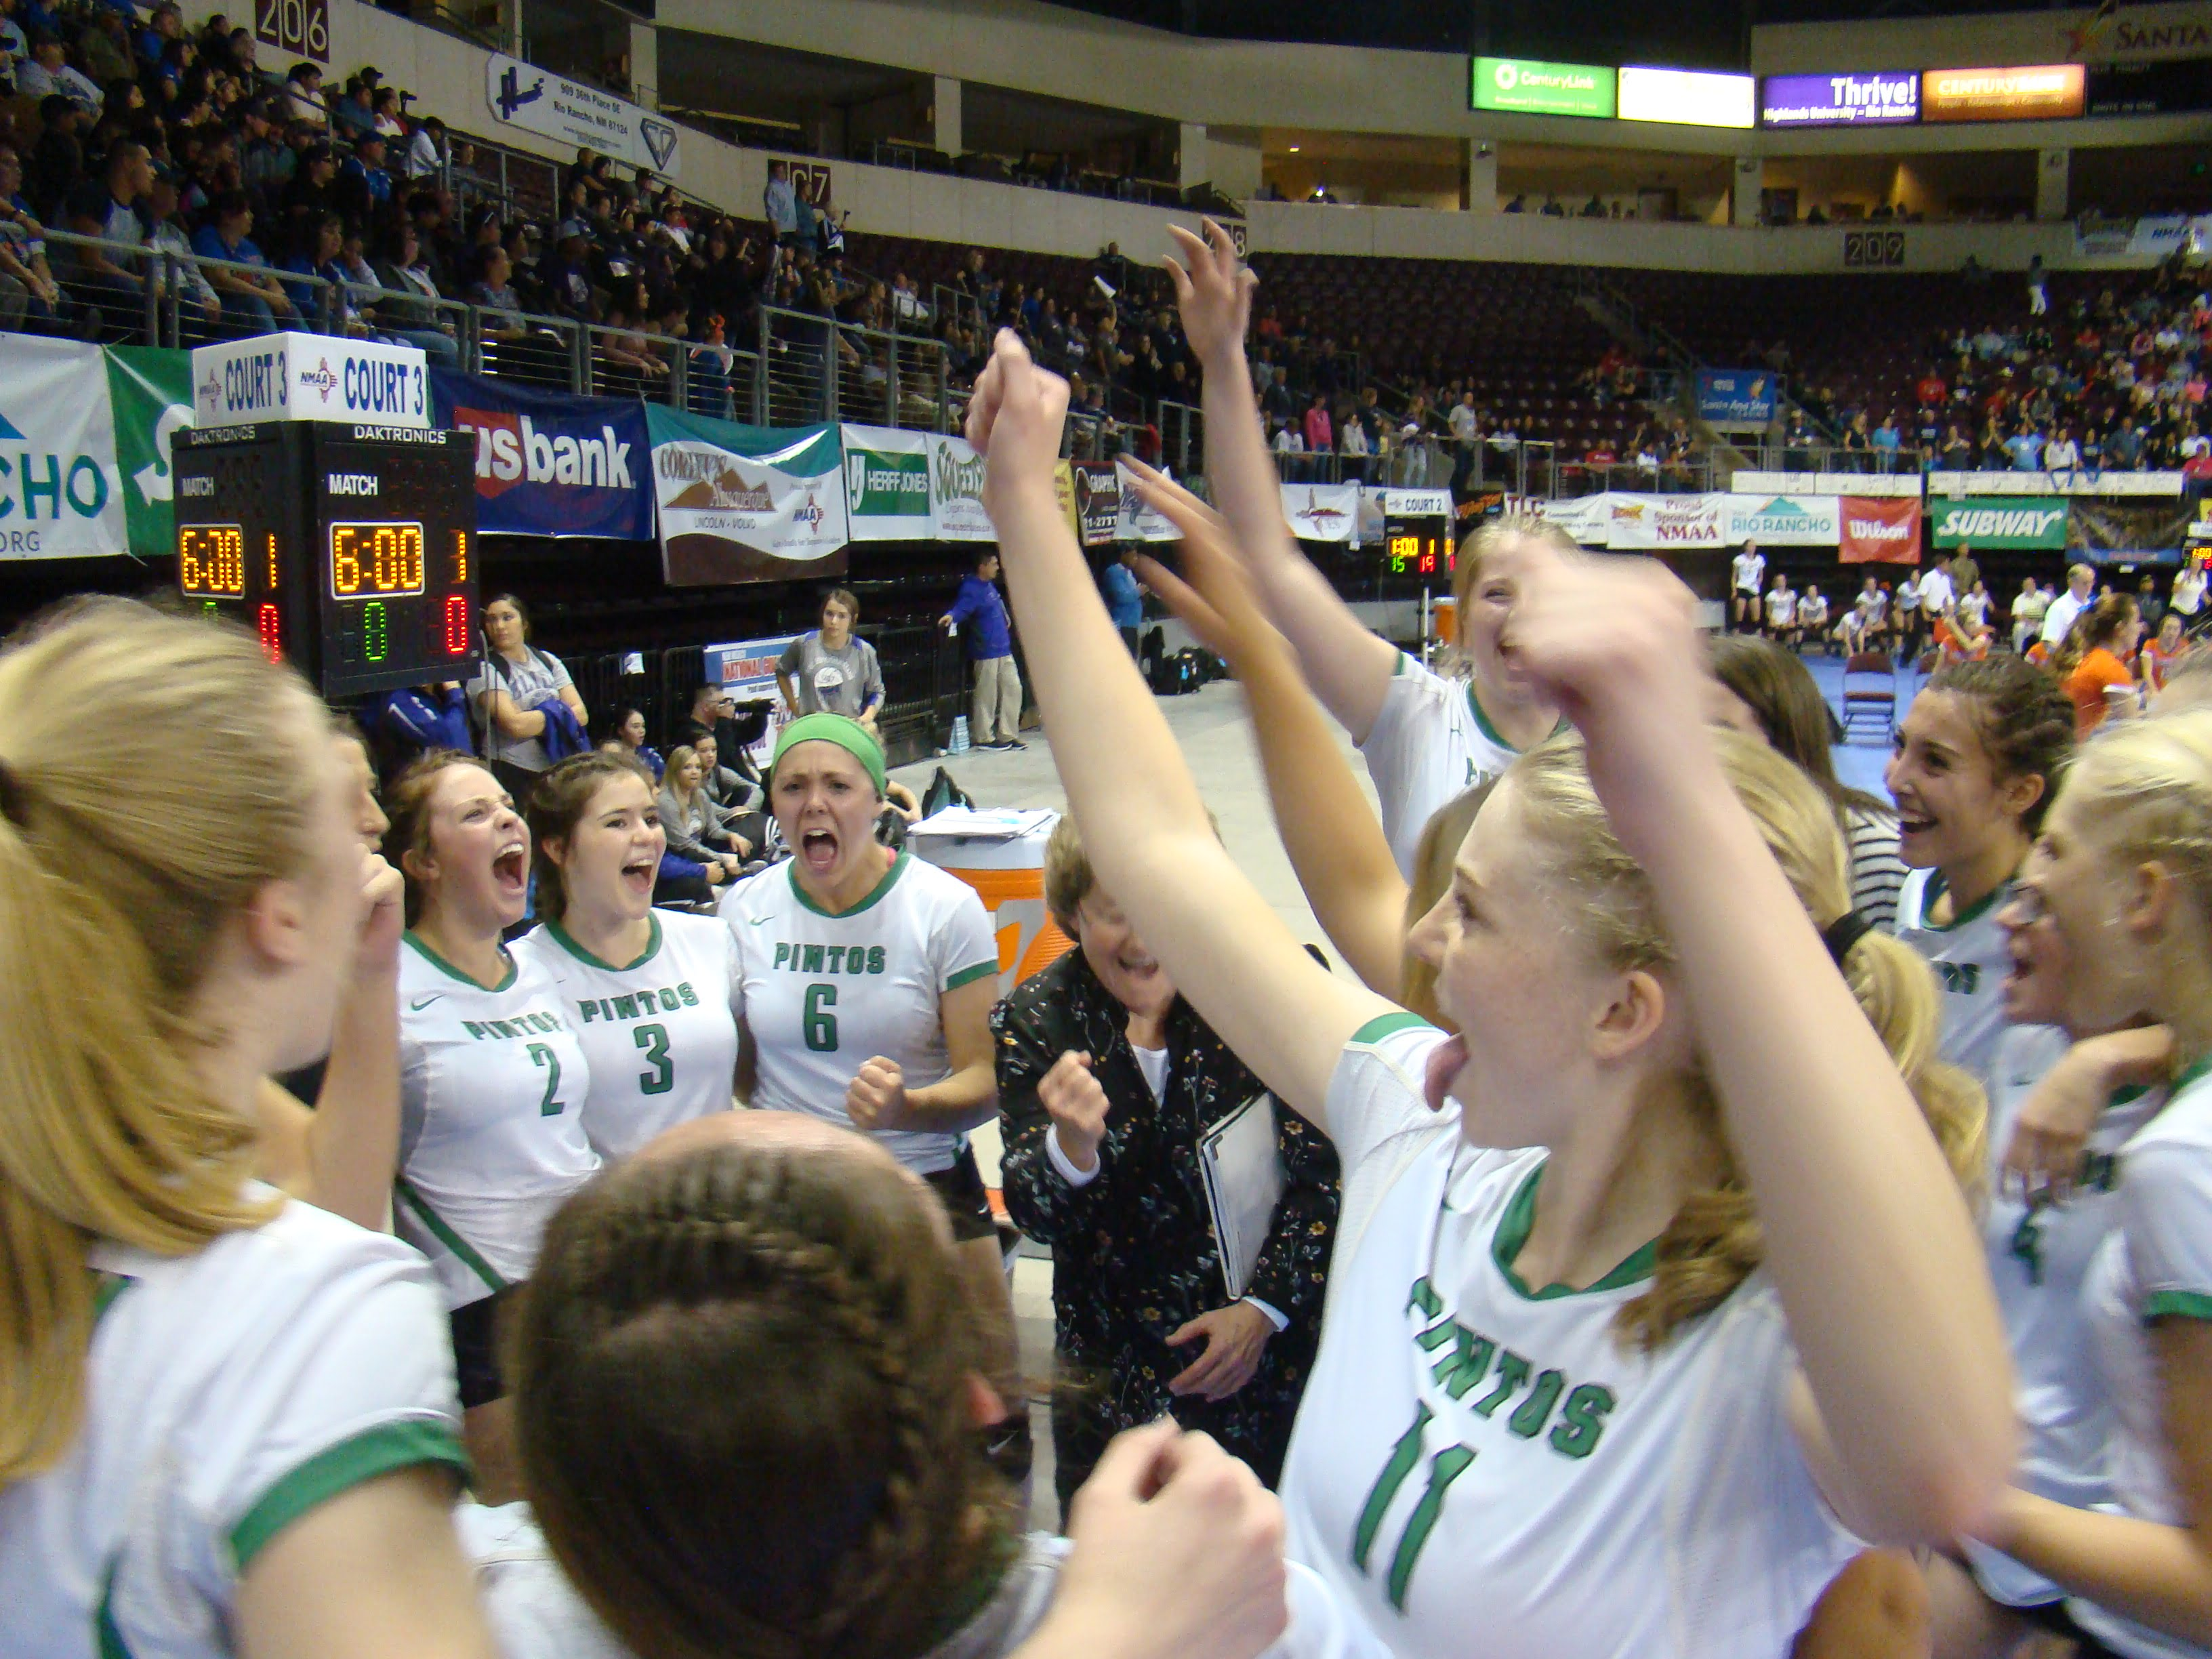 Lady Pintos grab a victory in quarterfinals before falling in semis